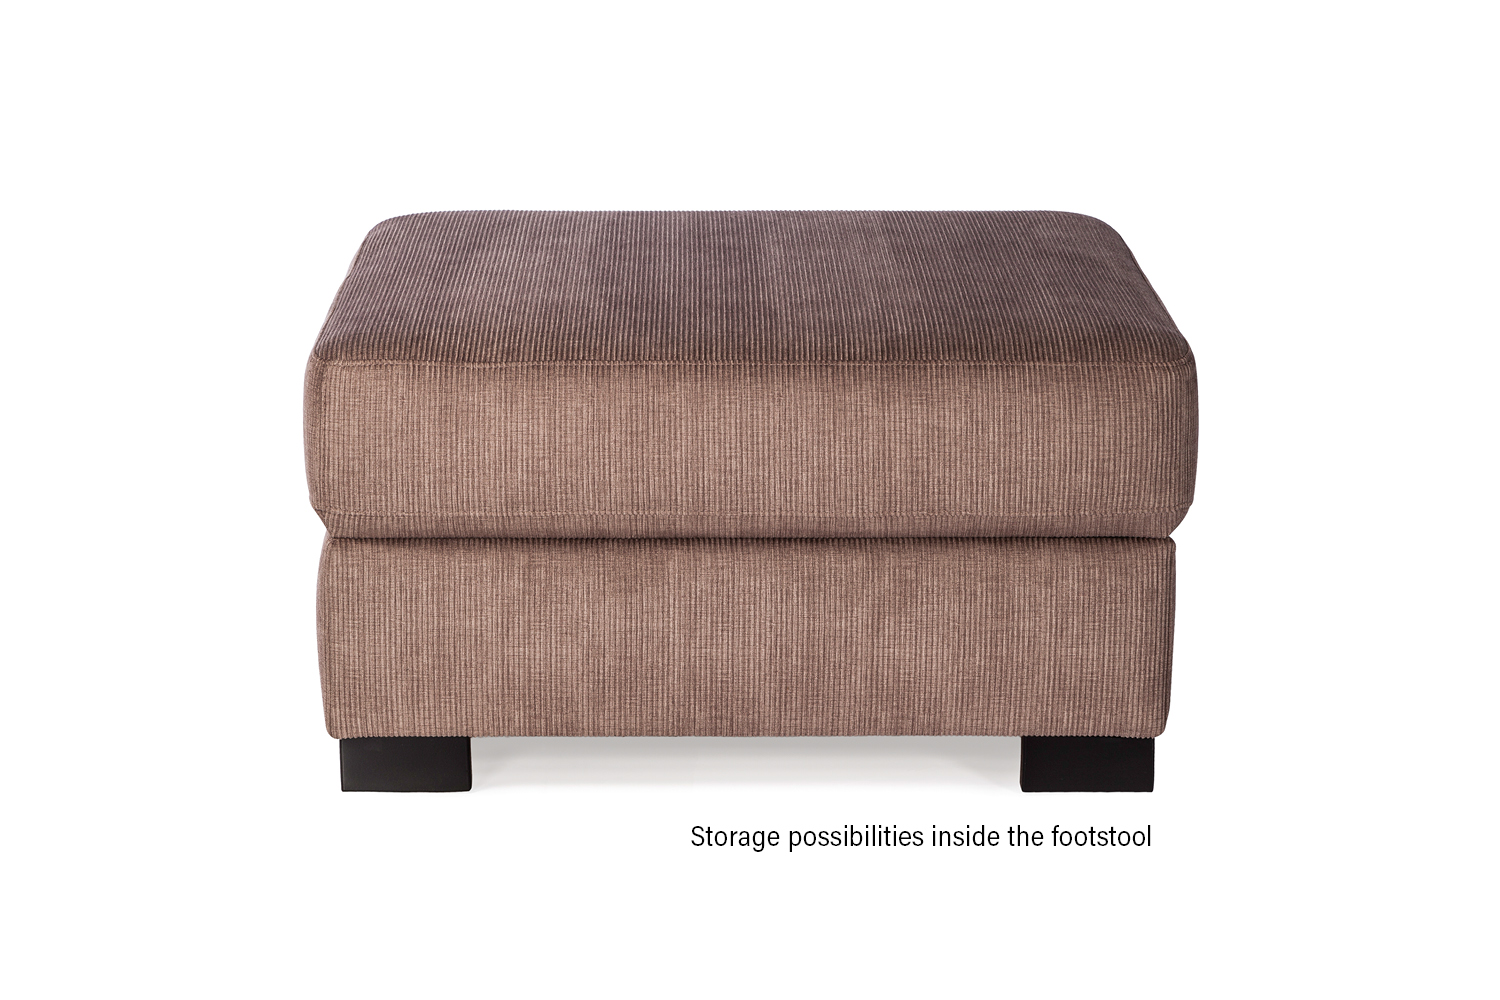 In picture: Footstool Magnum. Fabric: Hombre5310.